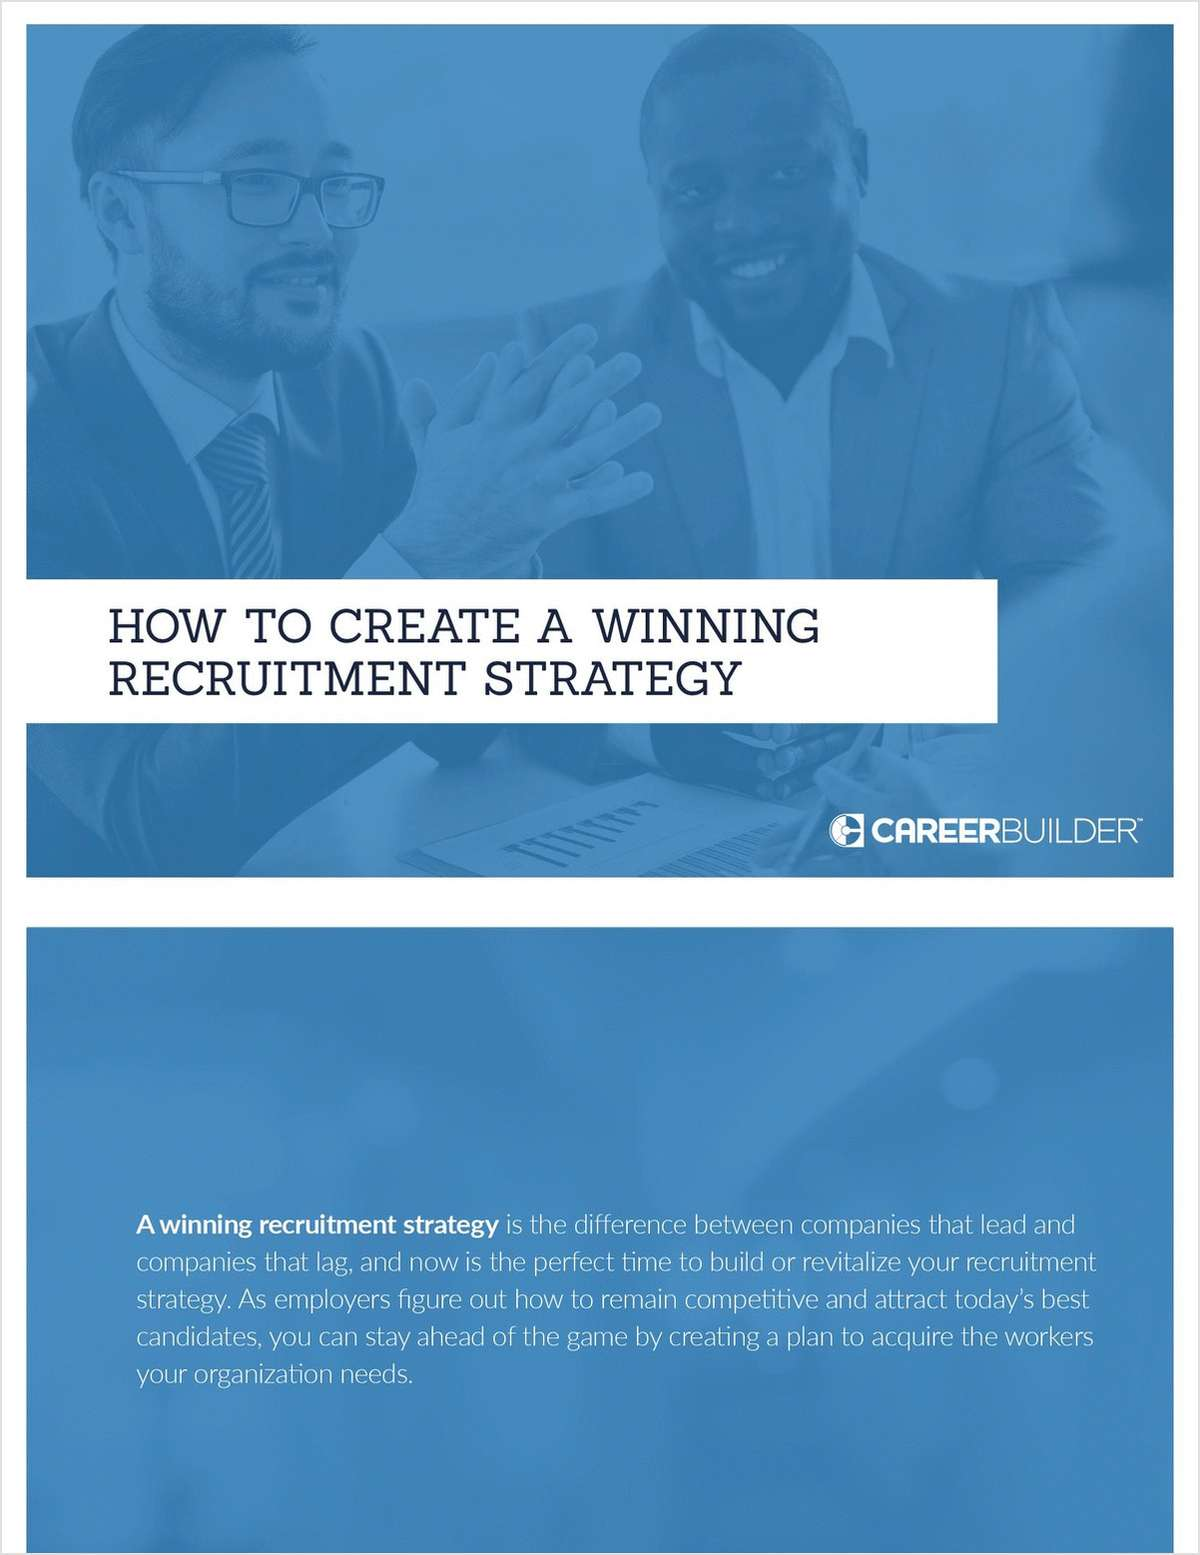 How to Create a Winning Recruitment Strategy